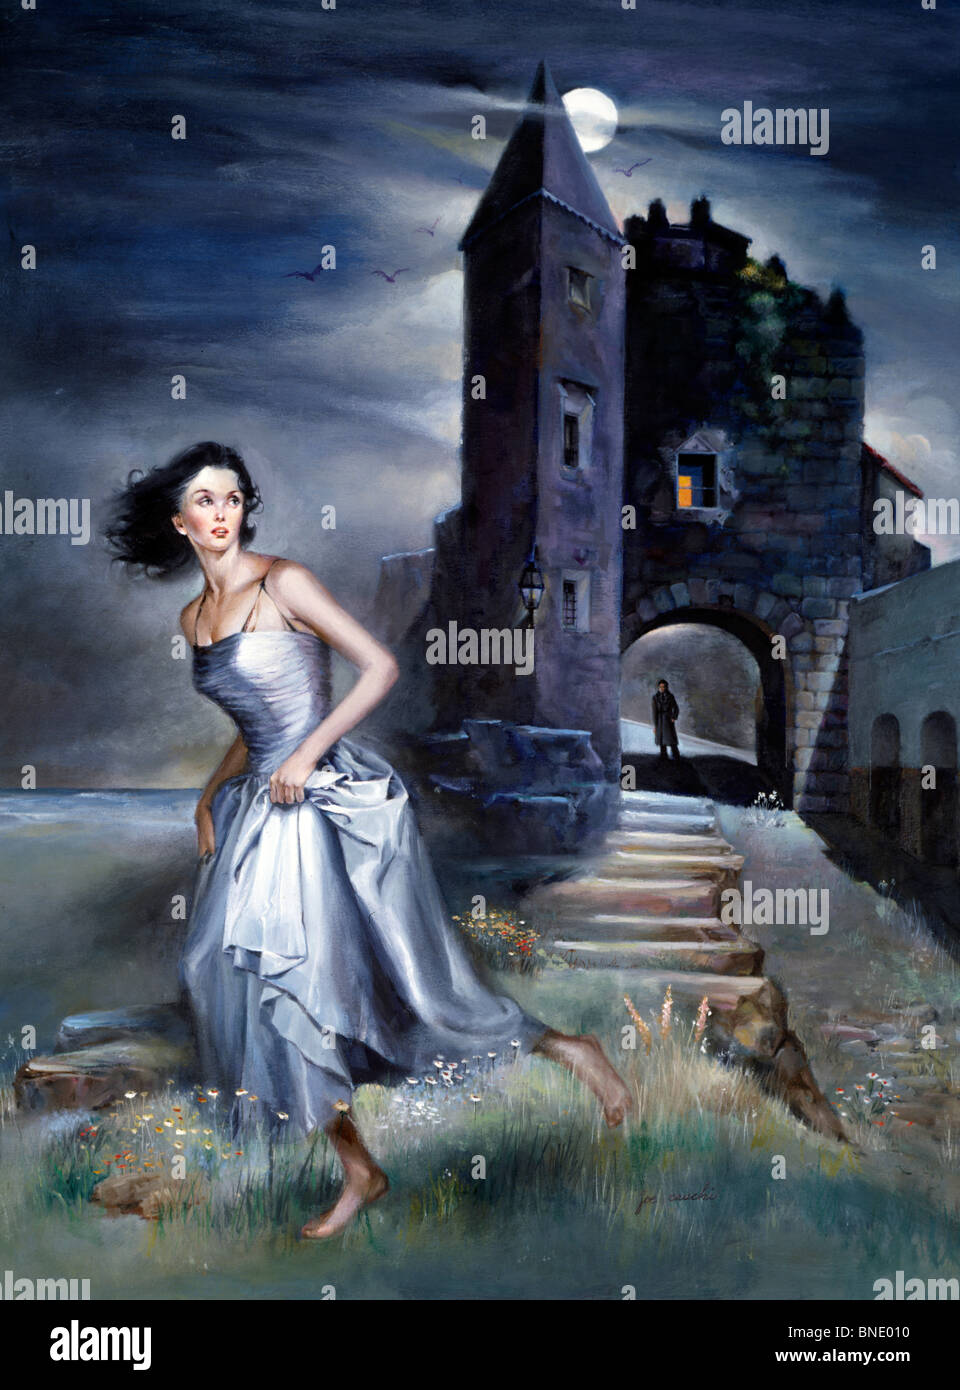 La donna in esecuzione con un castello in background Foto Stock